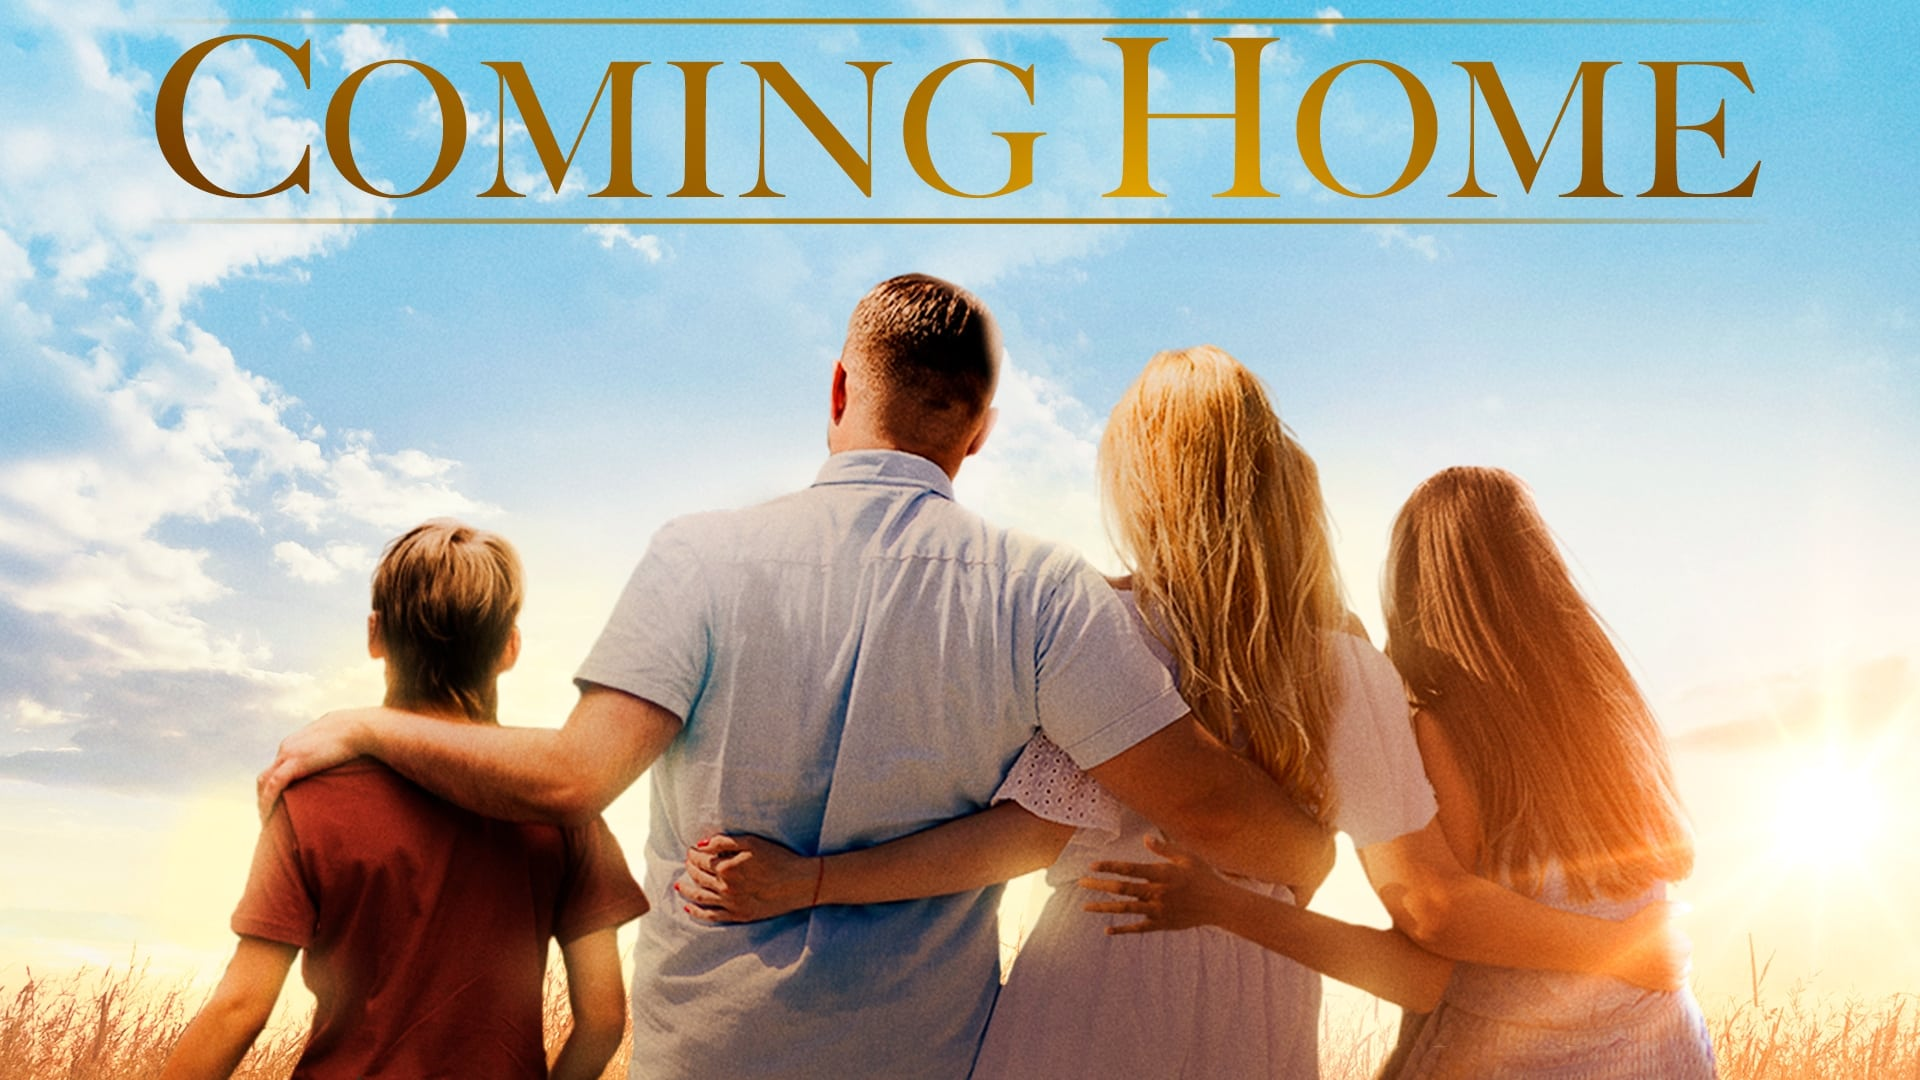 Coming Home (2016)